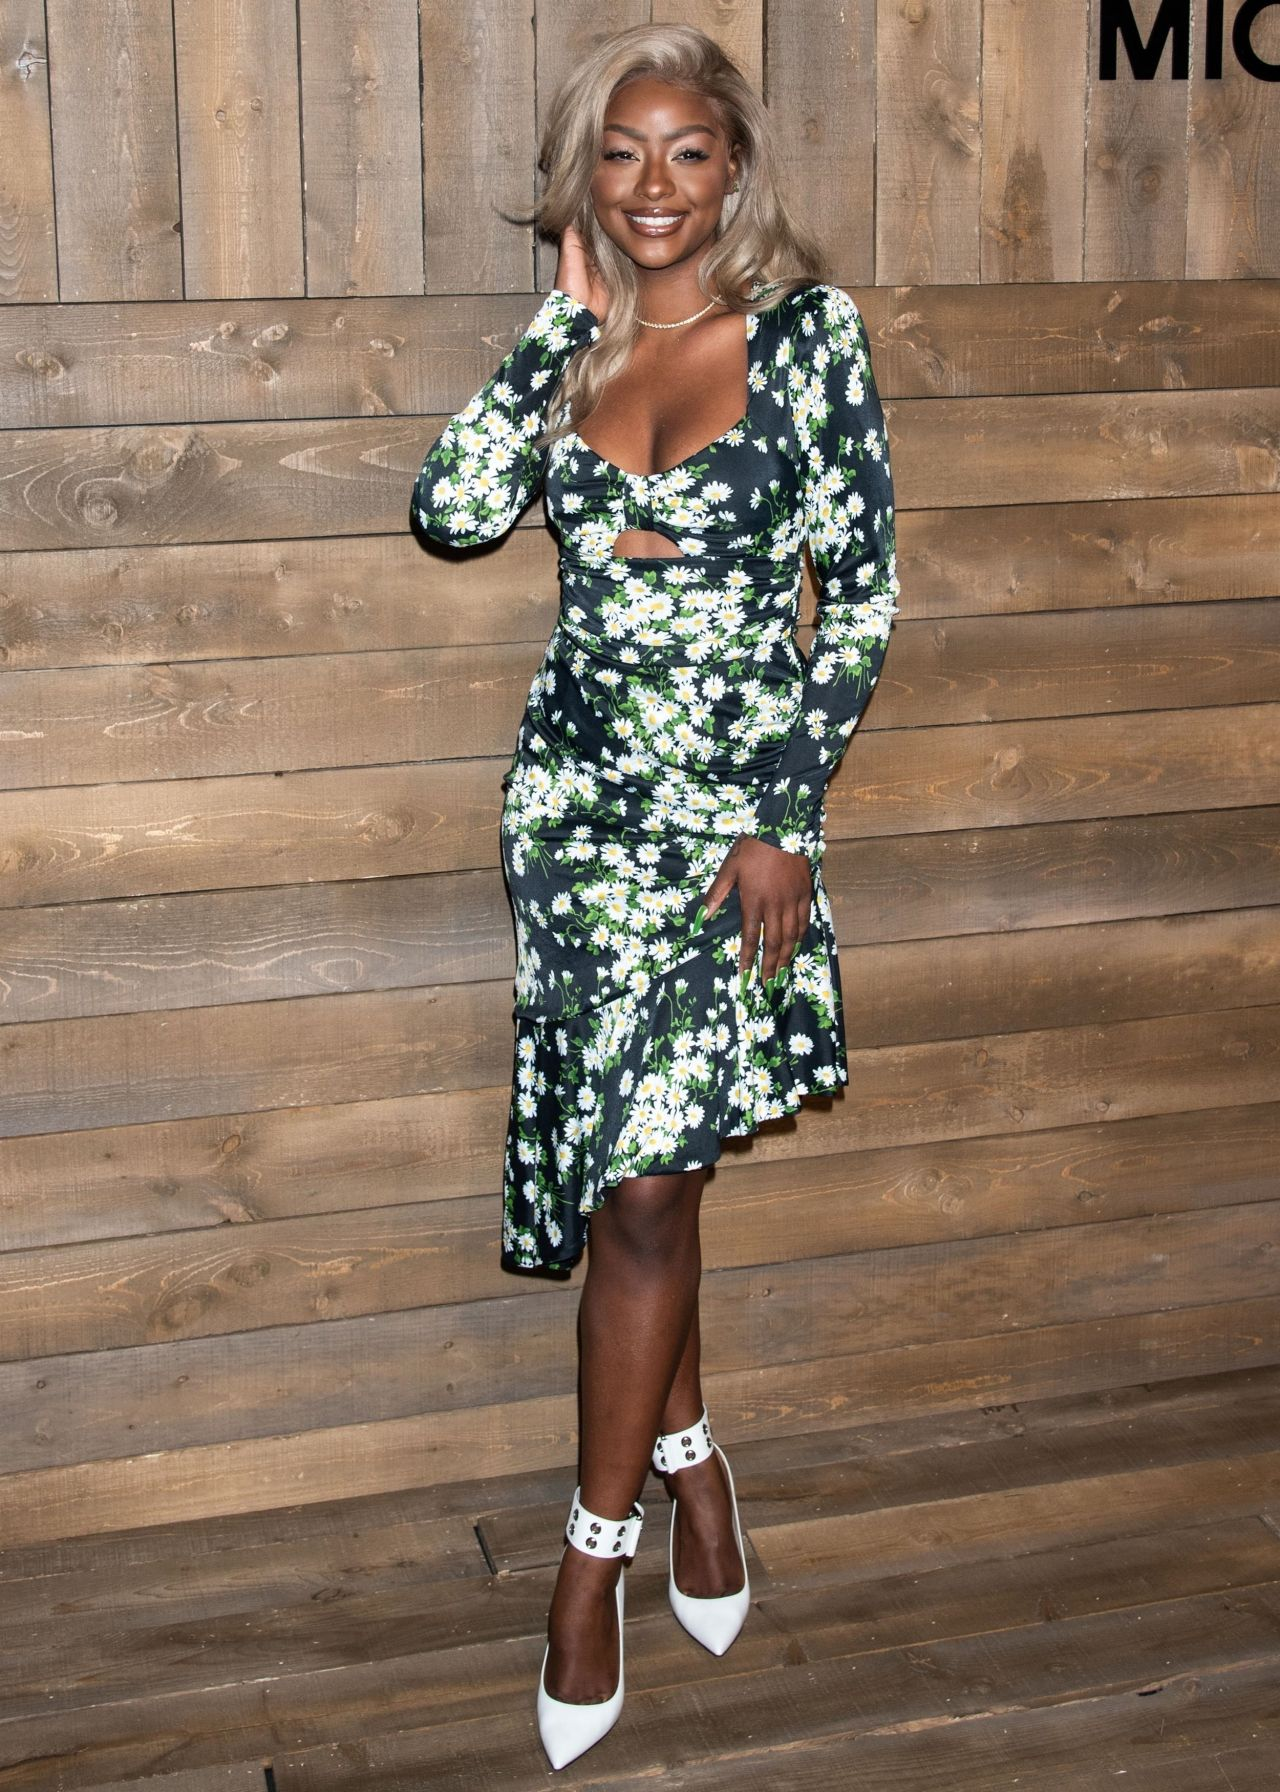 justine-skye-front-row-michael-kors-collection-fall-2020